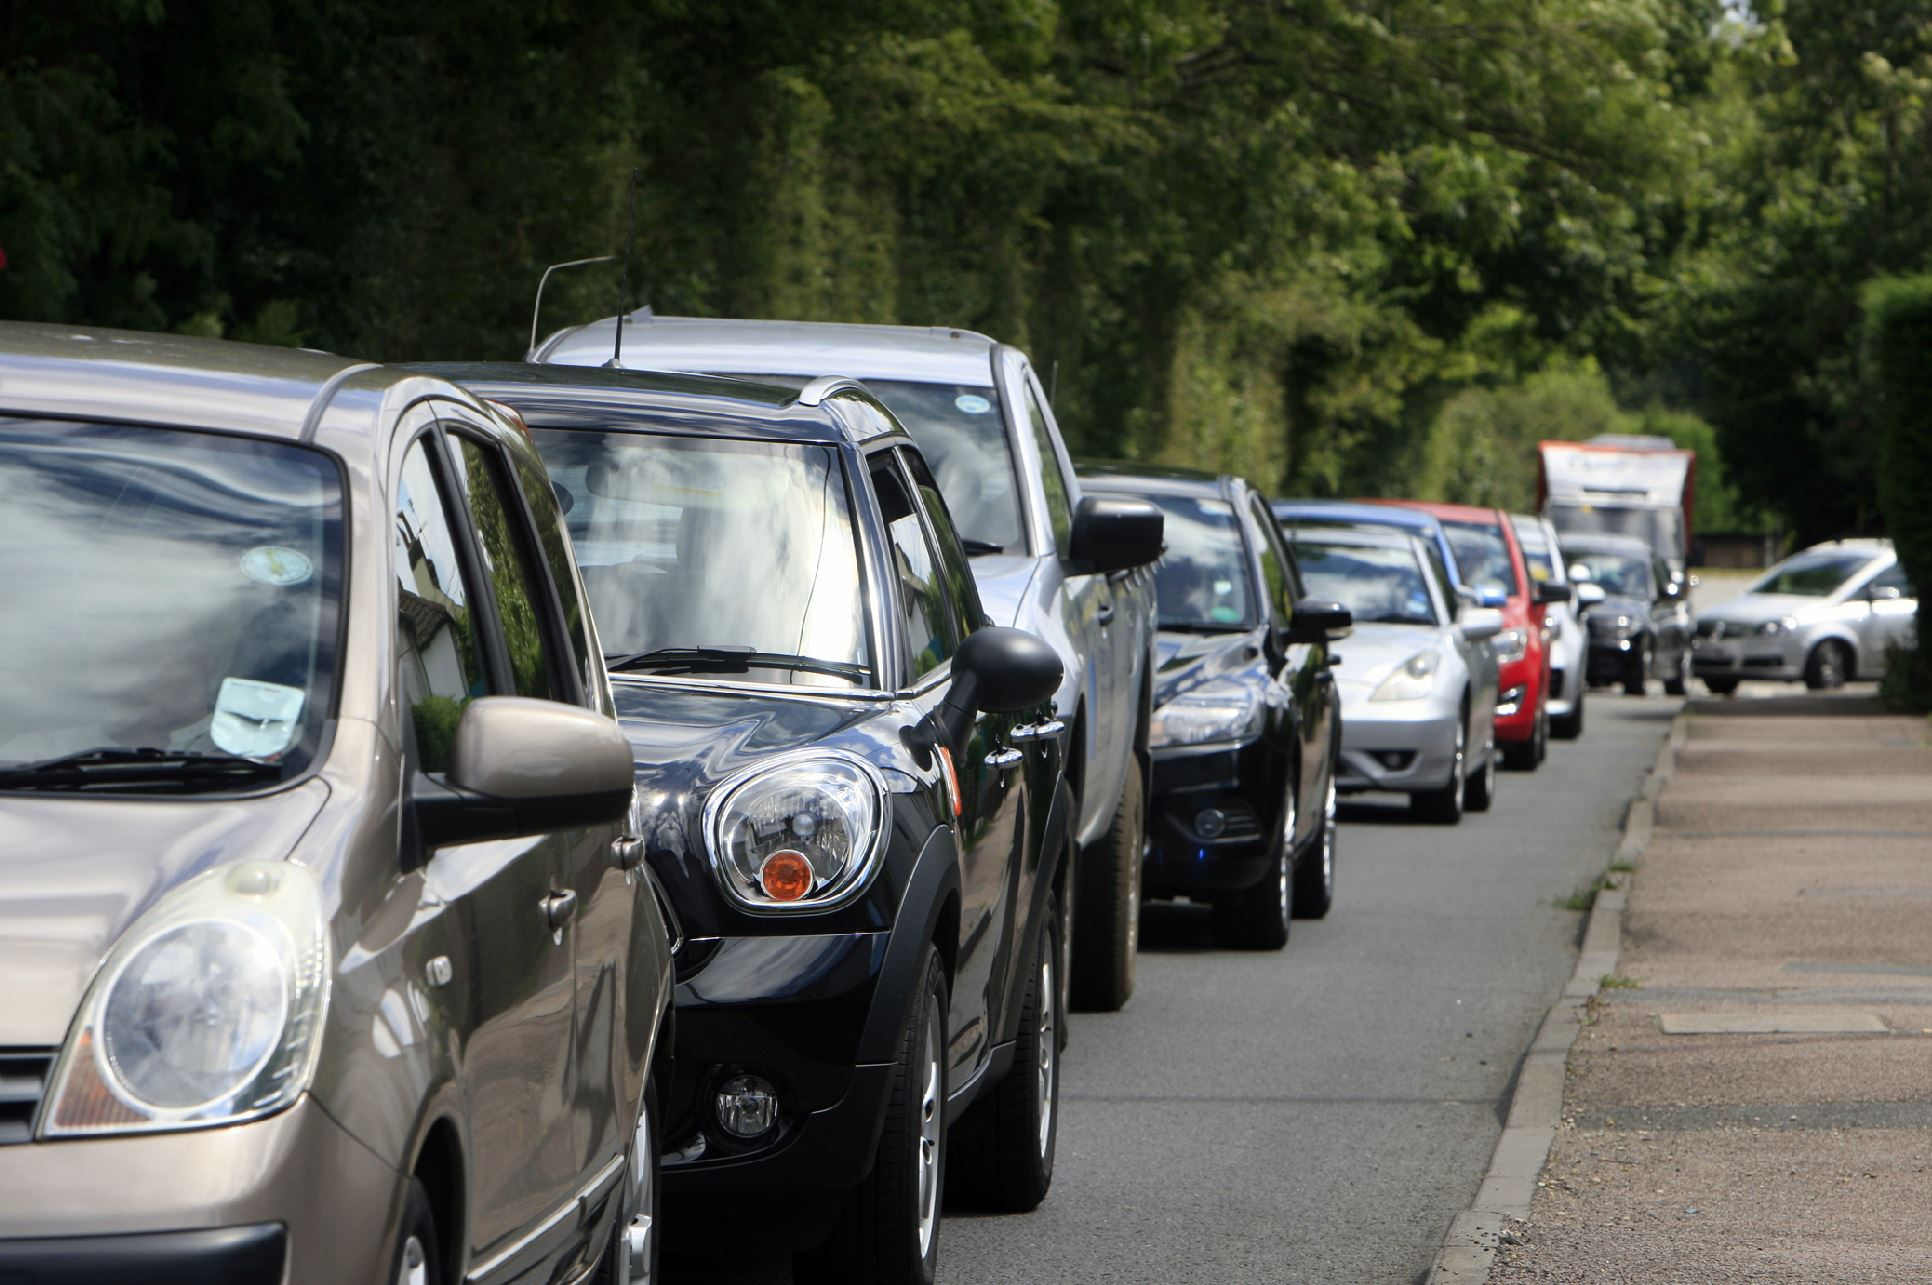 A vehicle has broken down on the M40